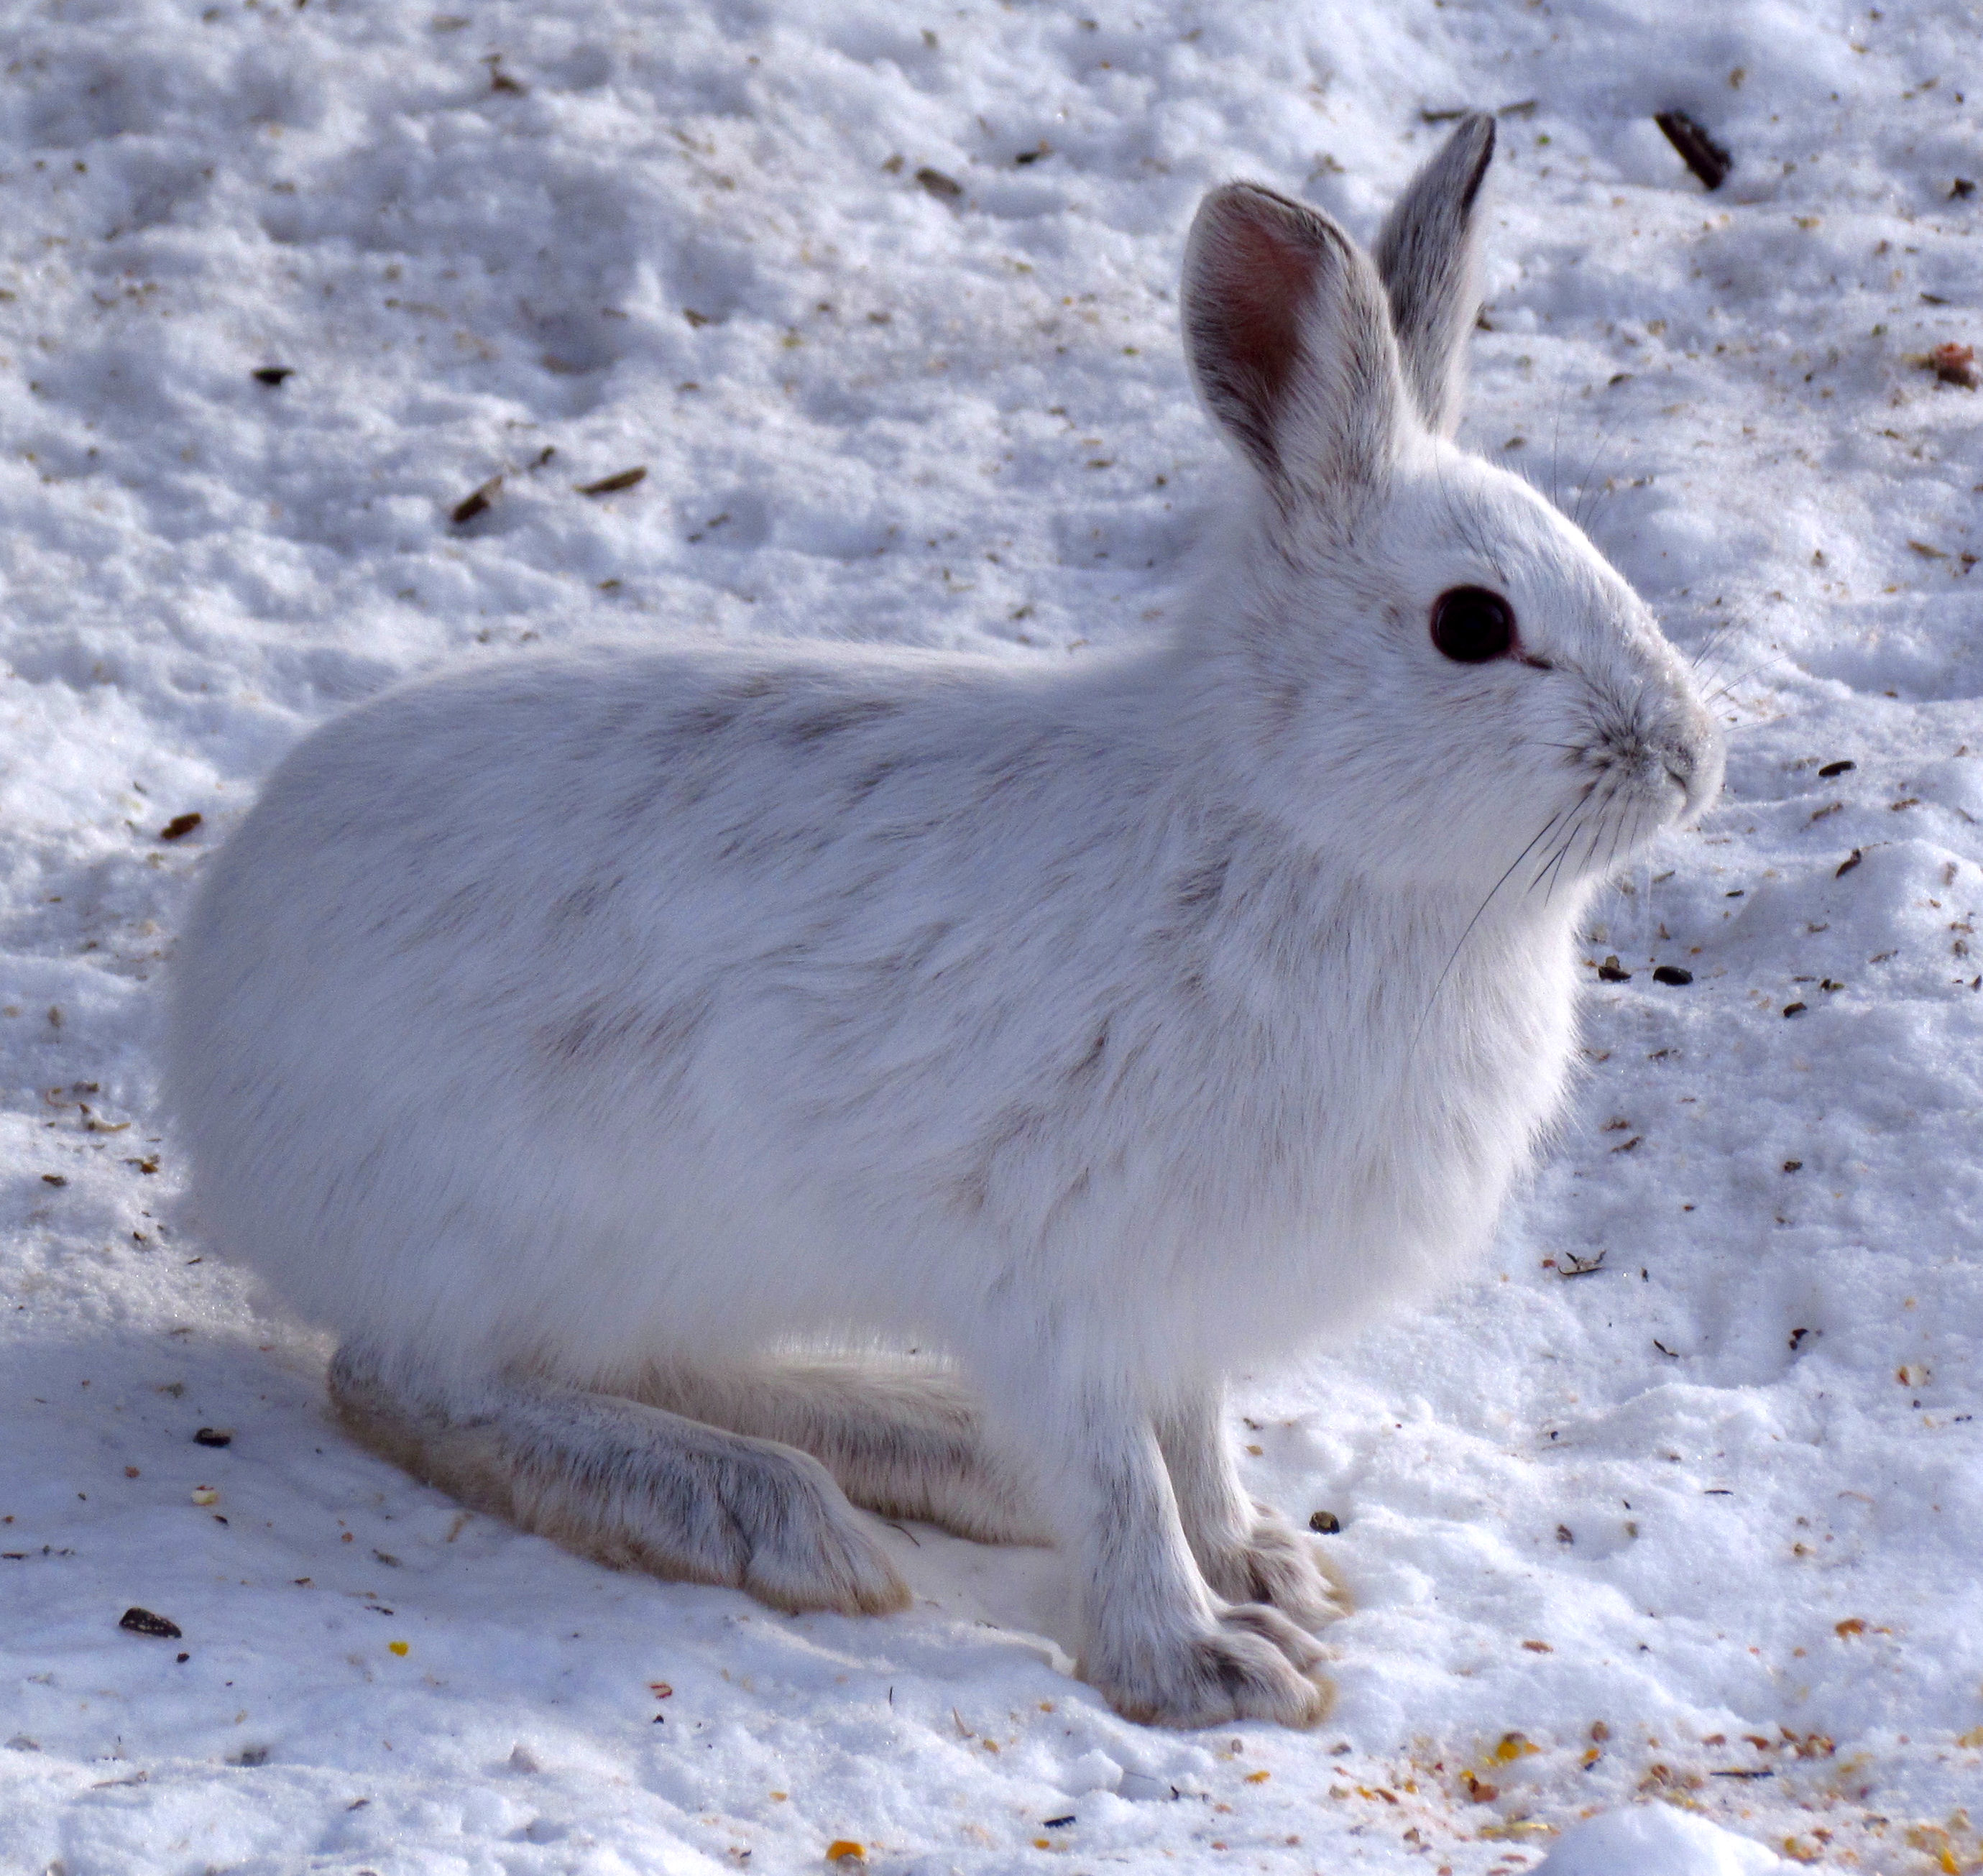 Snowshoe rabbit is also found in taiga